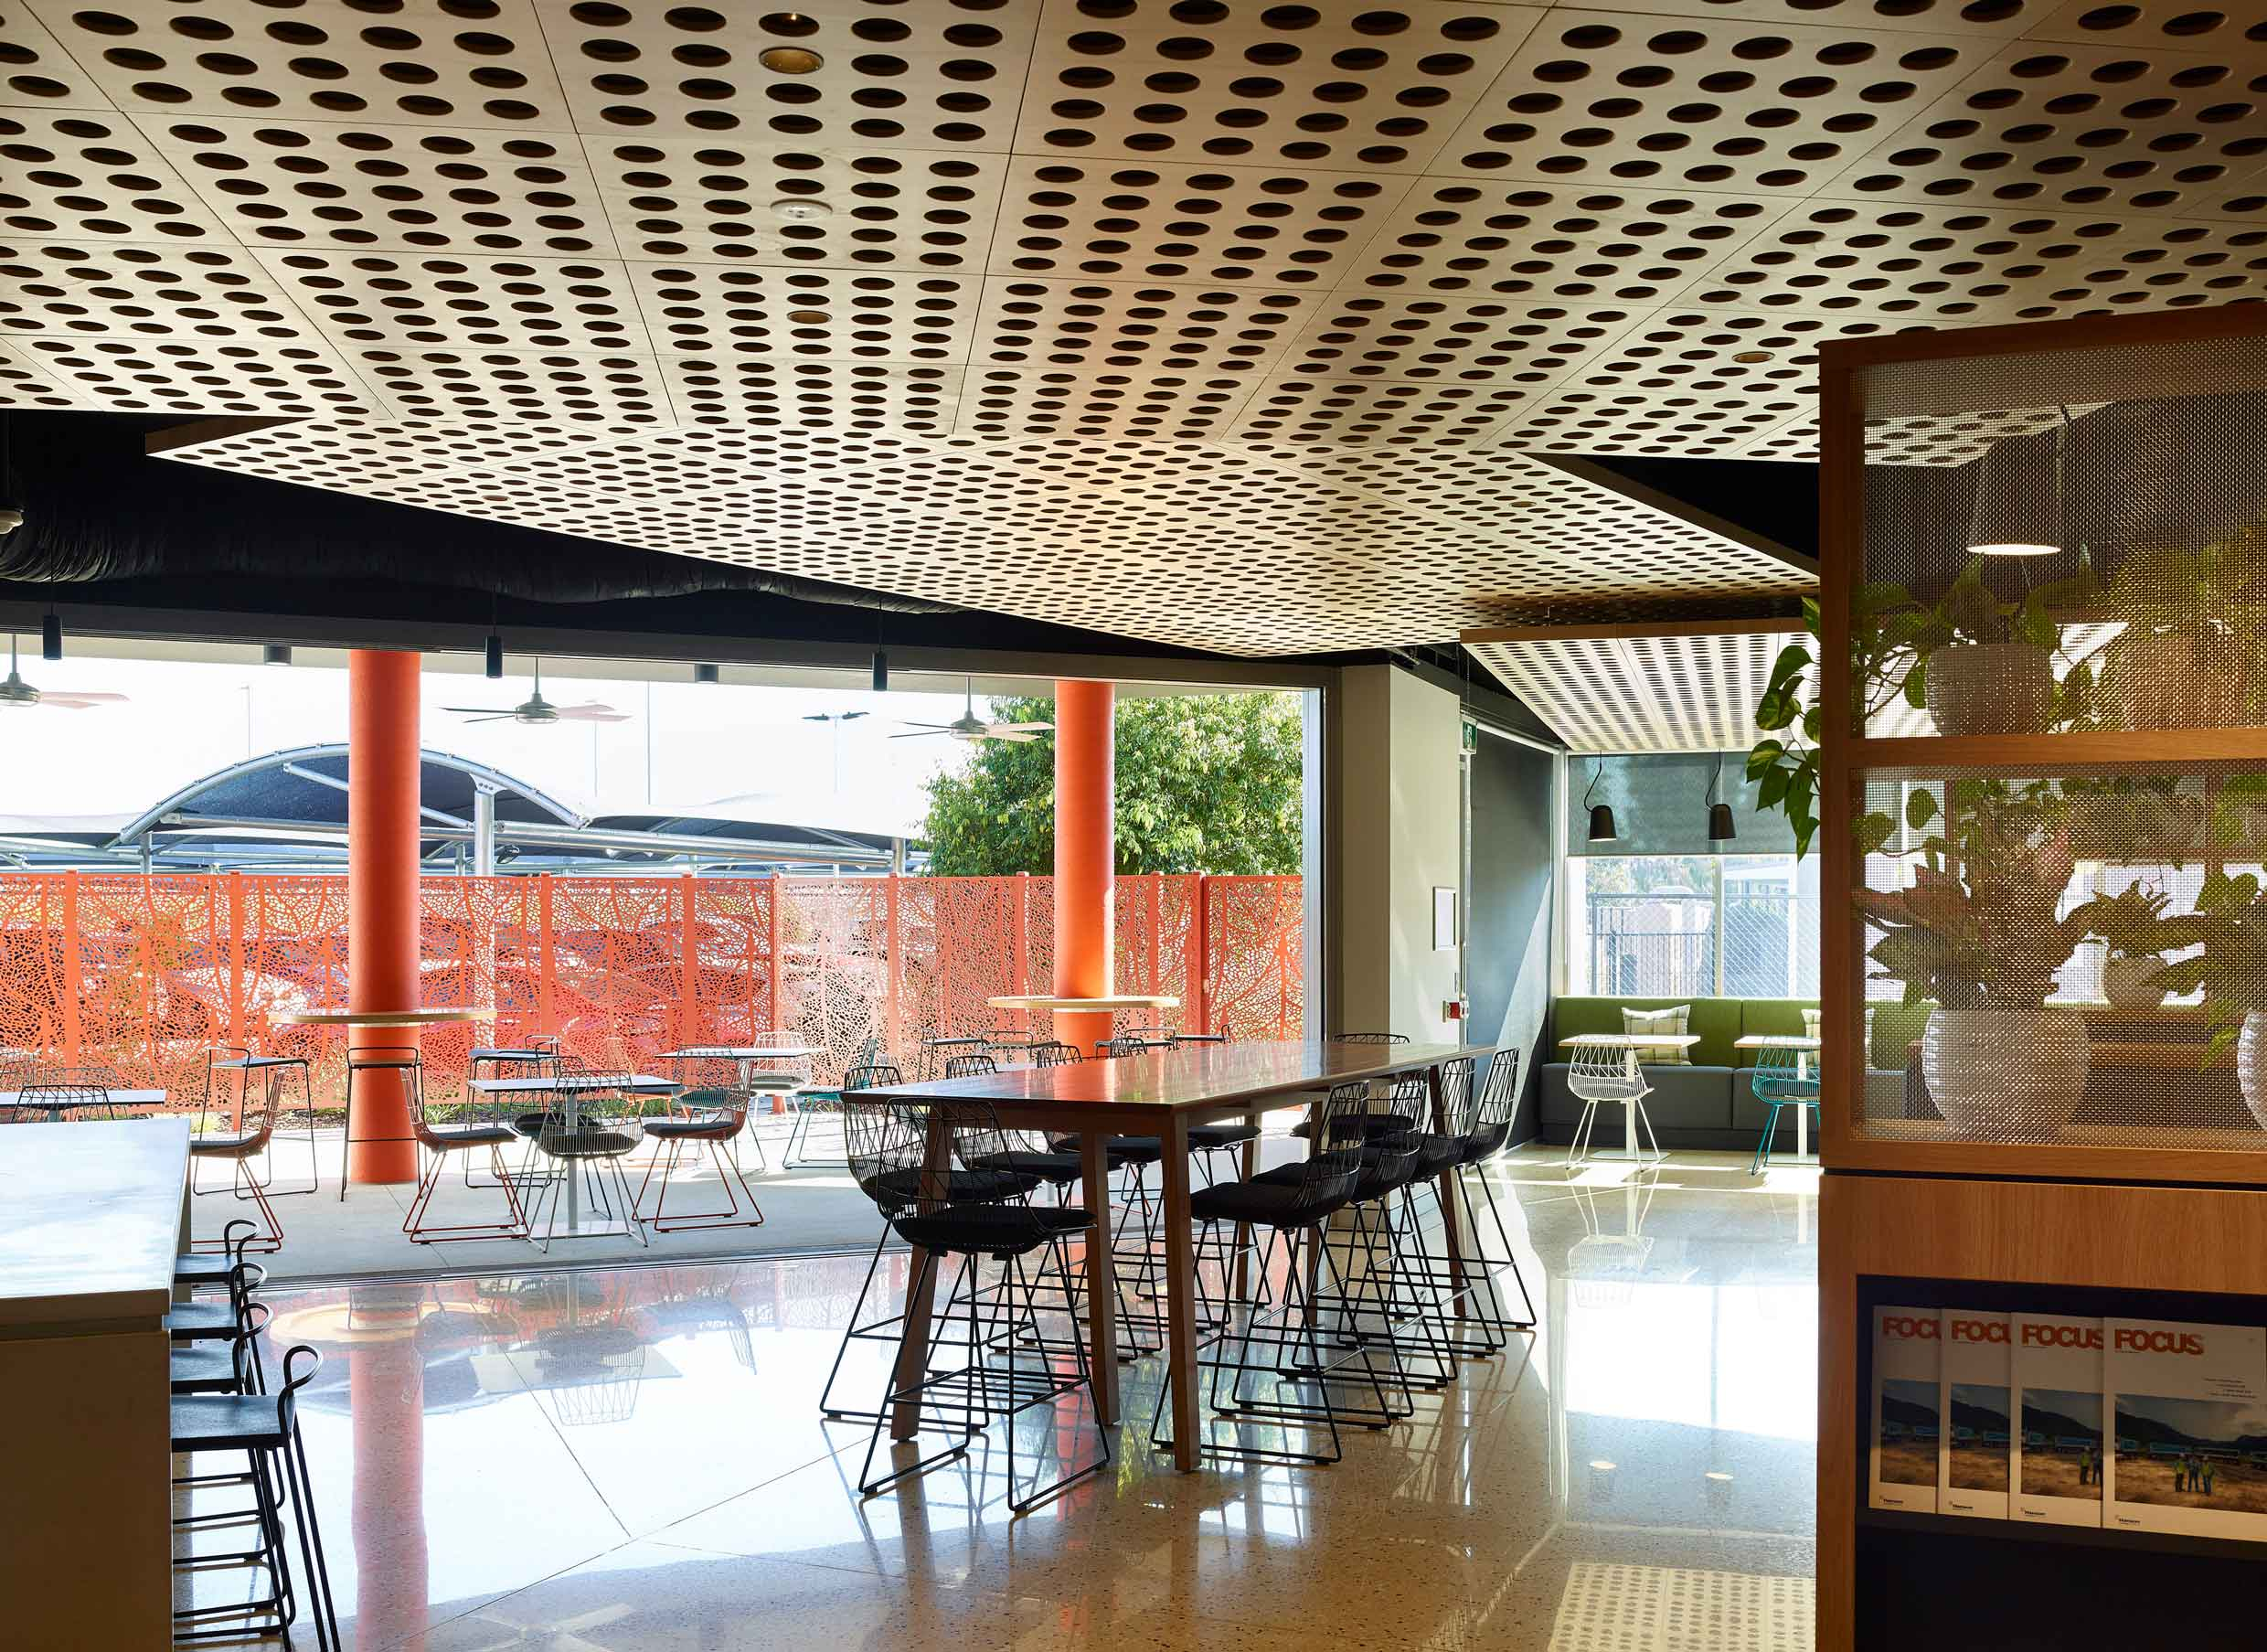 Hanson Fitout Tenant Representation, Interior Design, Project & Construction Management Project Image 7 by PCG